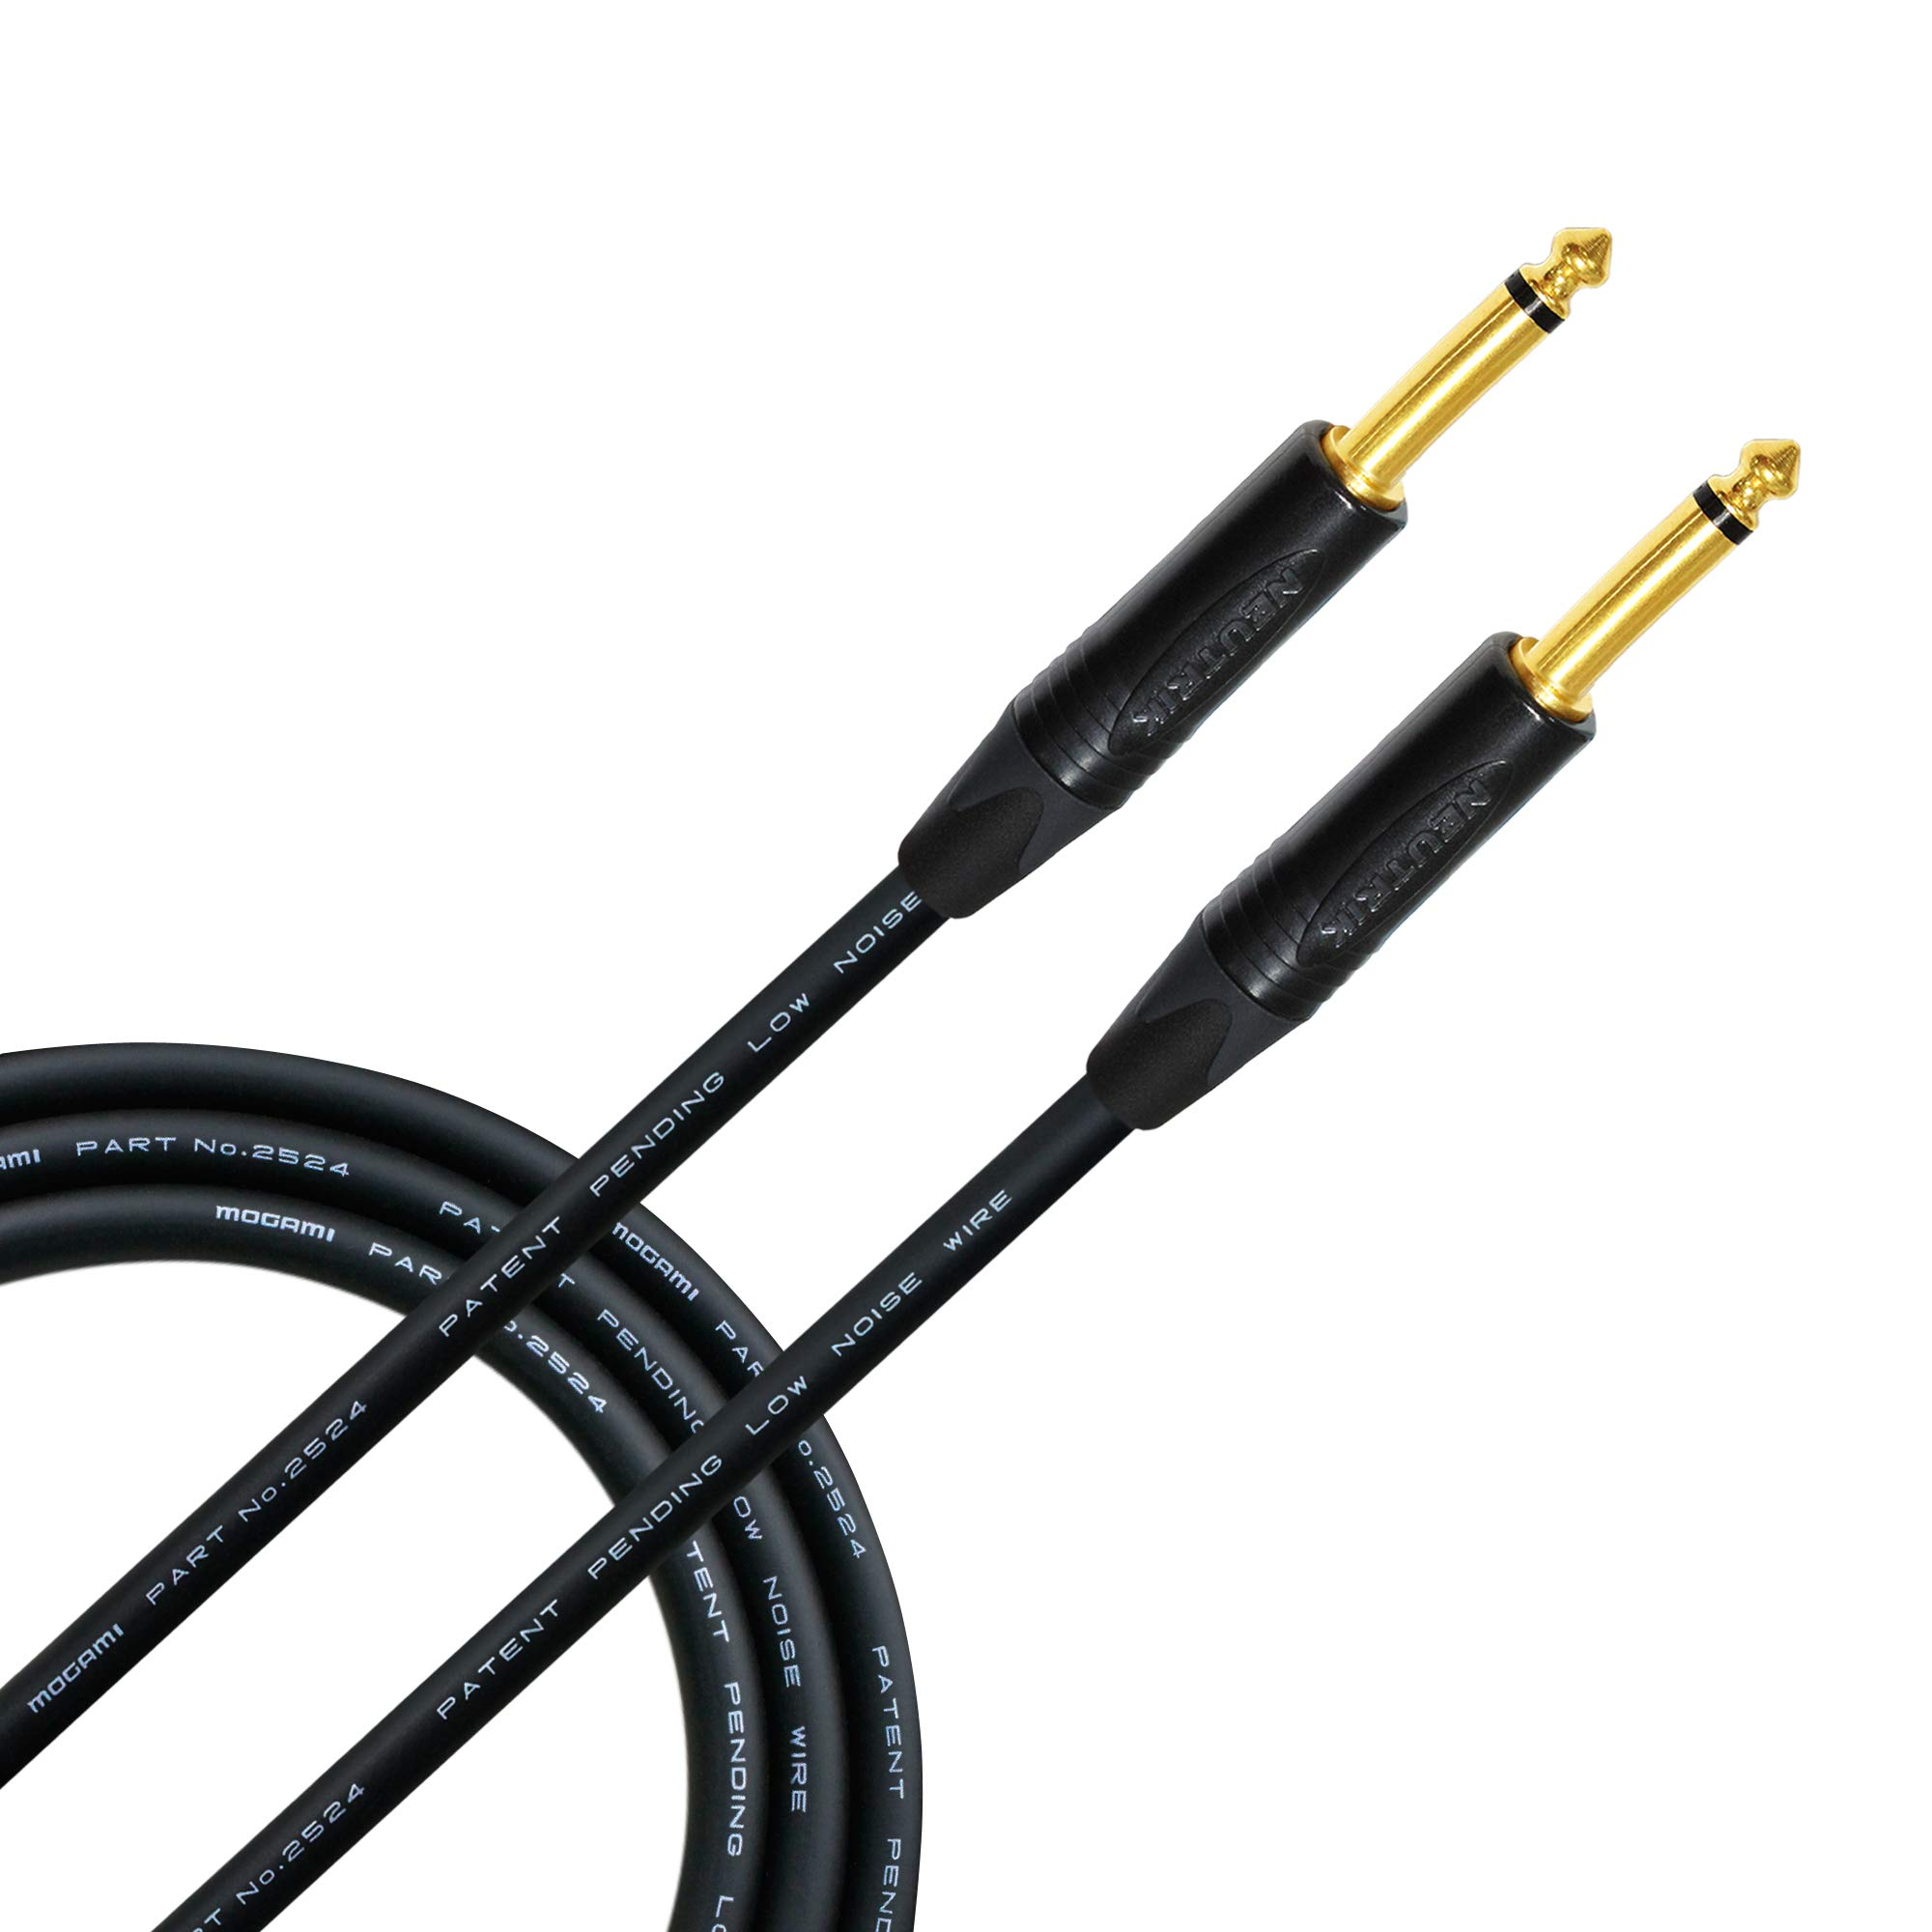 10 Foot - Guitar Bass Instrument Cable CUSTOM MADE By WORLDS BEST CABLES - using Mogami 2524 wire and Neutrik NP2X-B ¼ Inch (6.35mm) Straight Gold TS Connectors